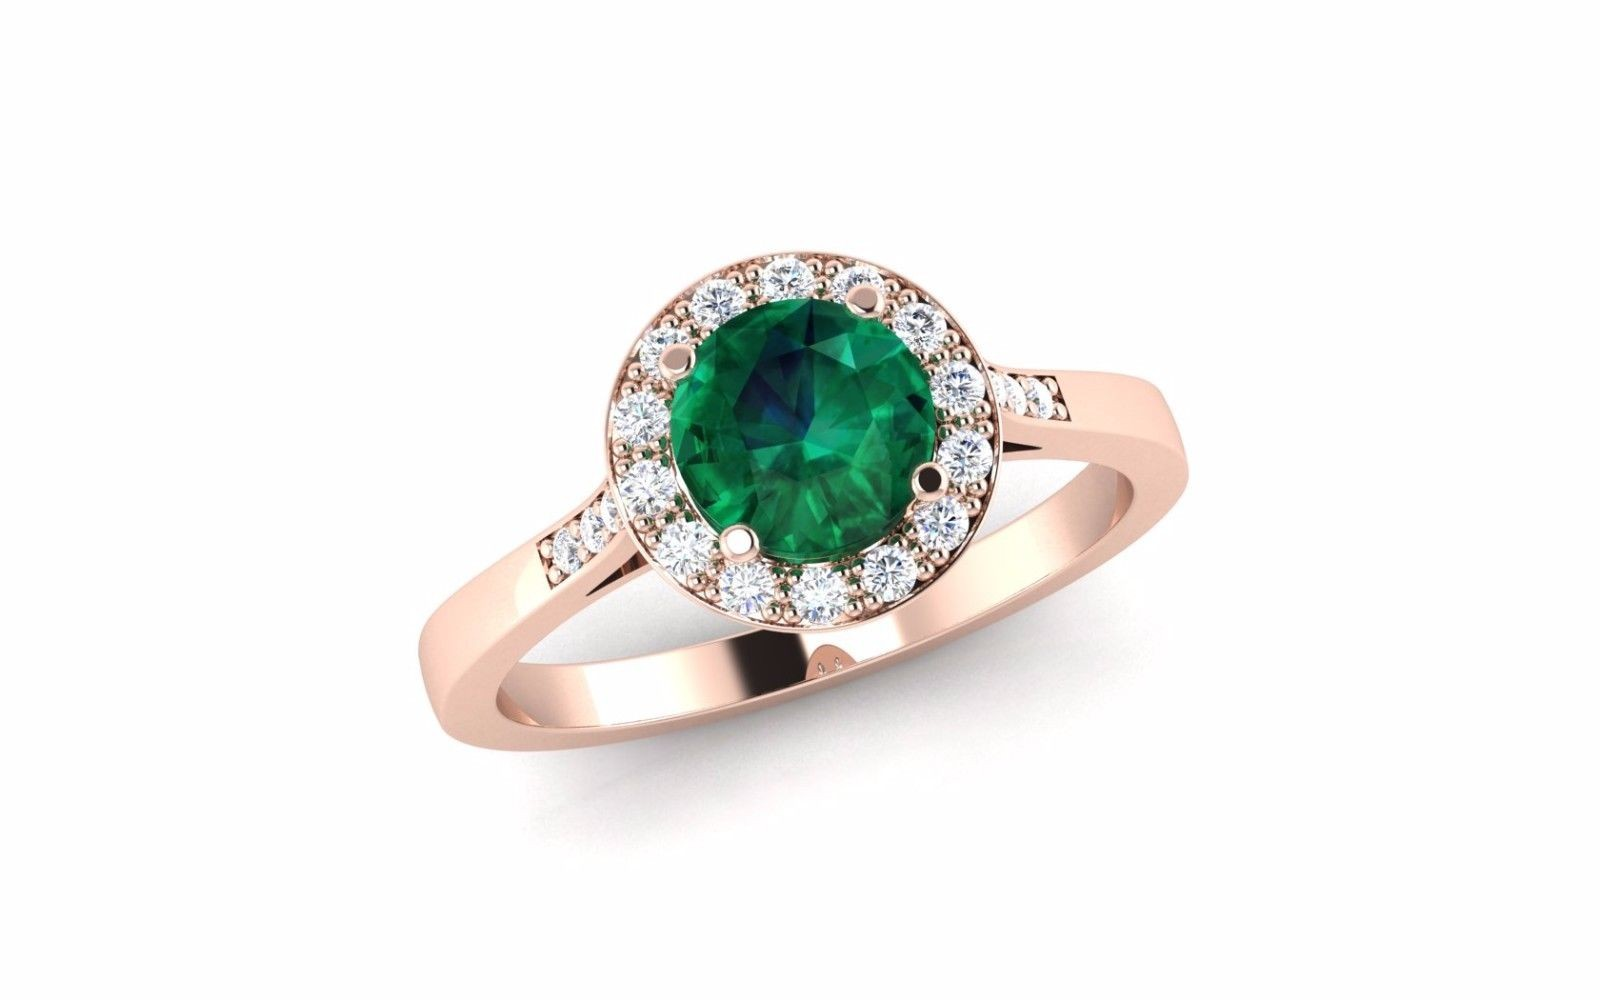 18-carat rose gold emerald and diamond halo cluster engagement ring